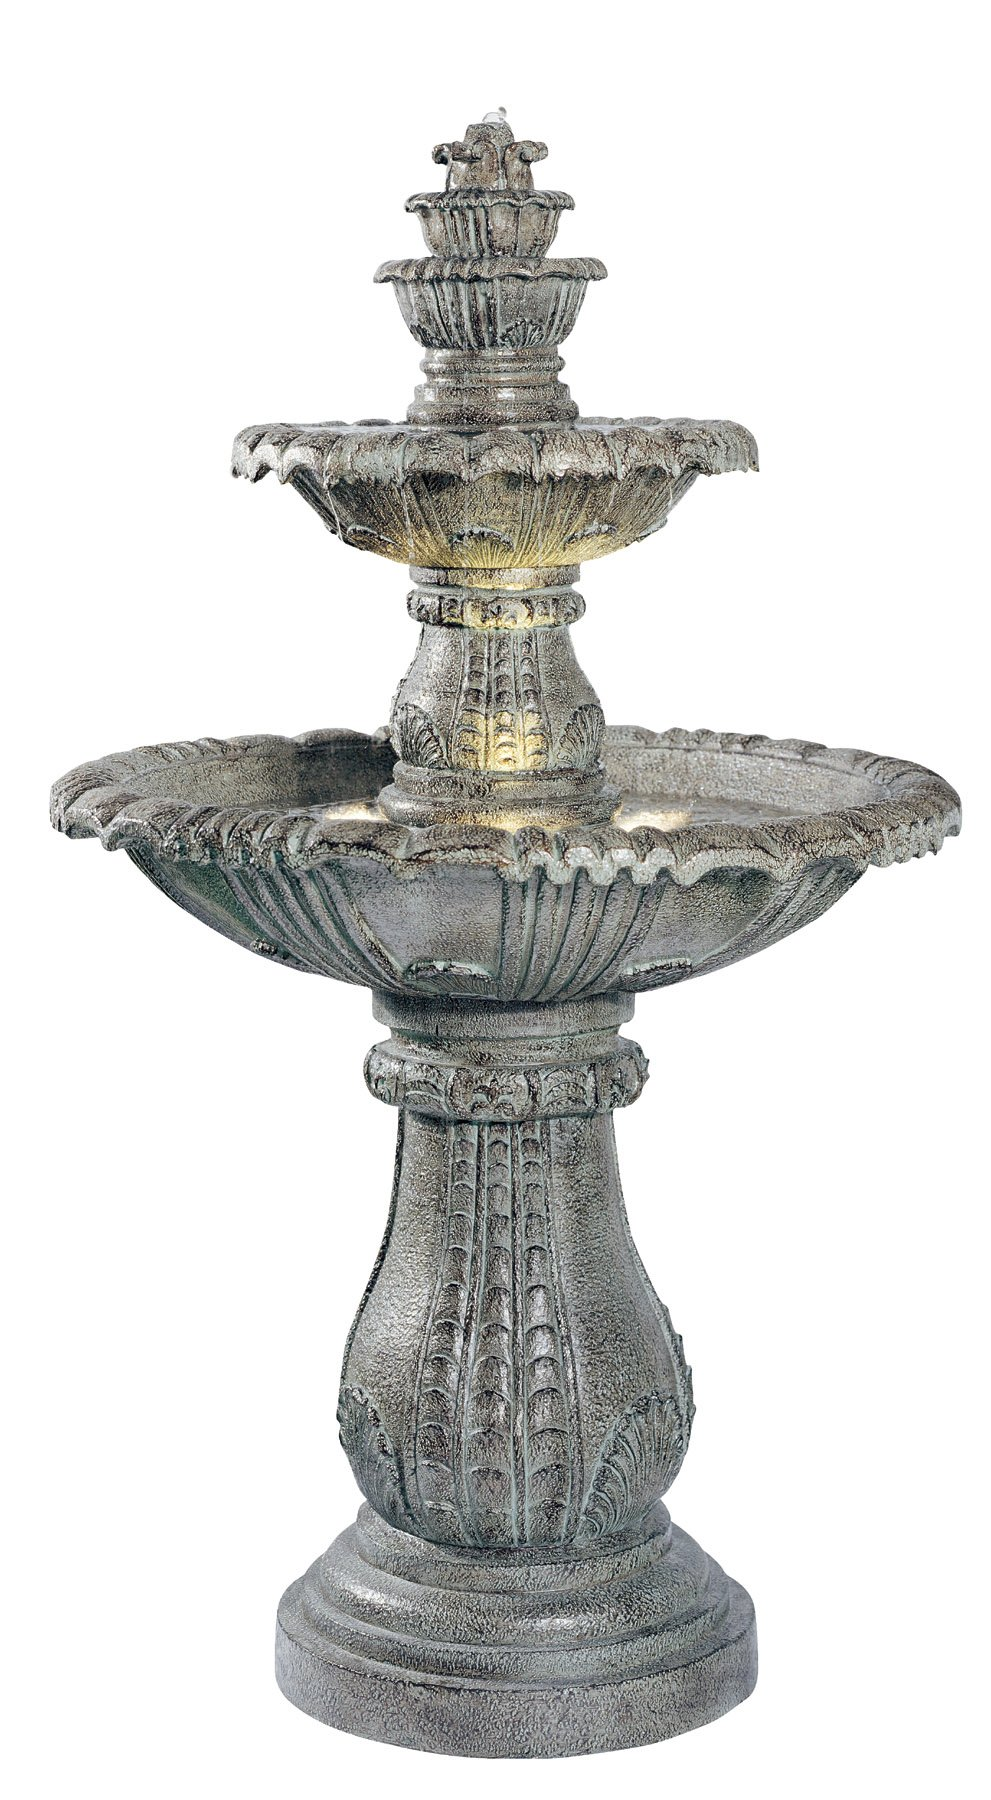 Kenroy Home #02254 Venetian Outdoor Floor Fountain with Moss Finish by Kenroy Home